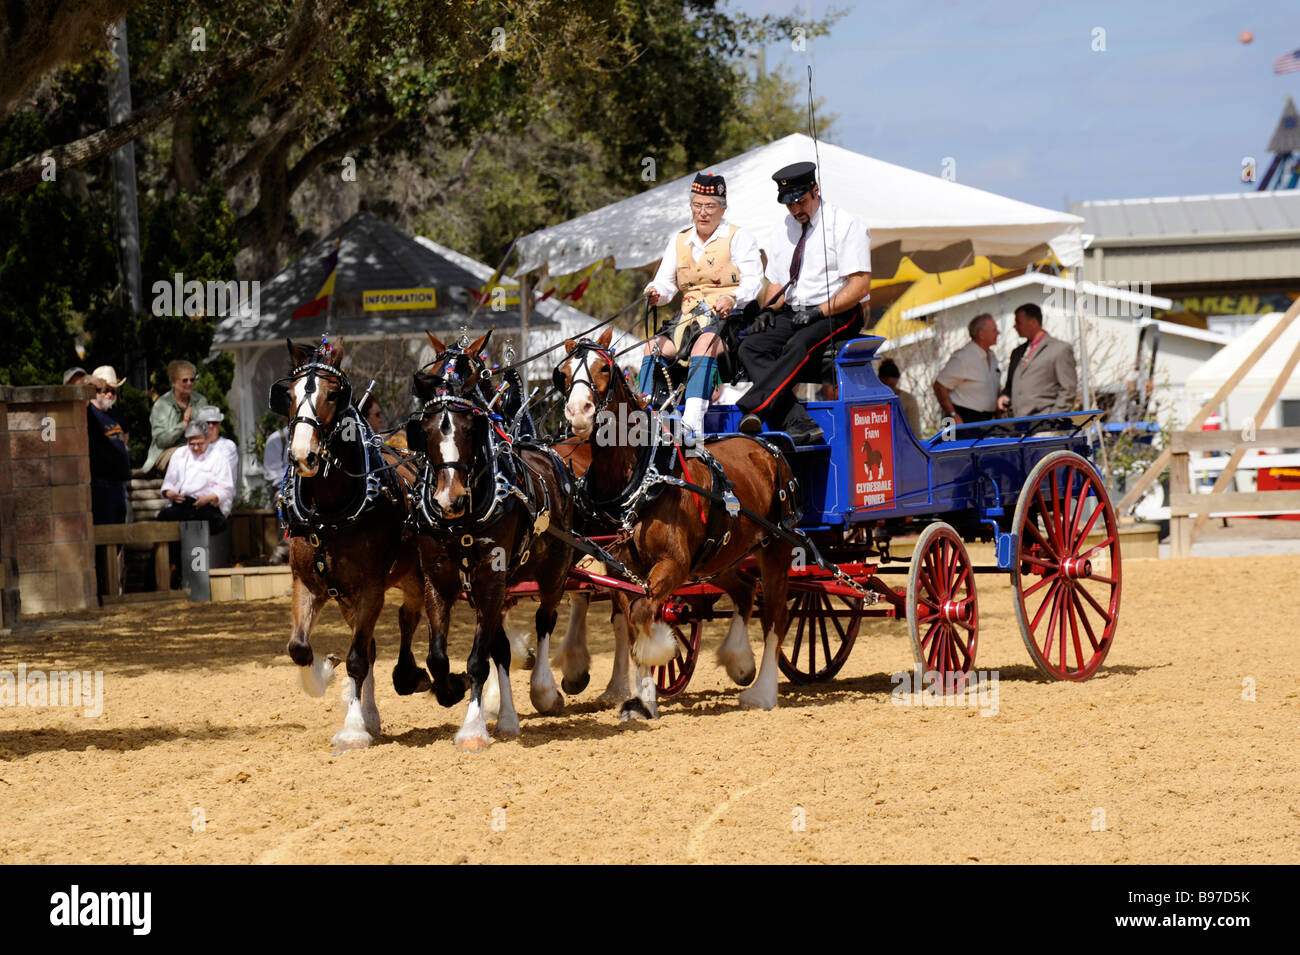 Draft for hitch horses exhibition at Florida State Fair Tampa - Stock Image